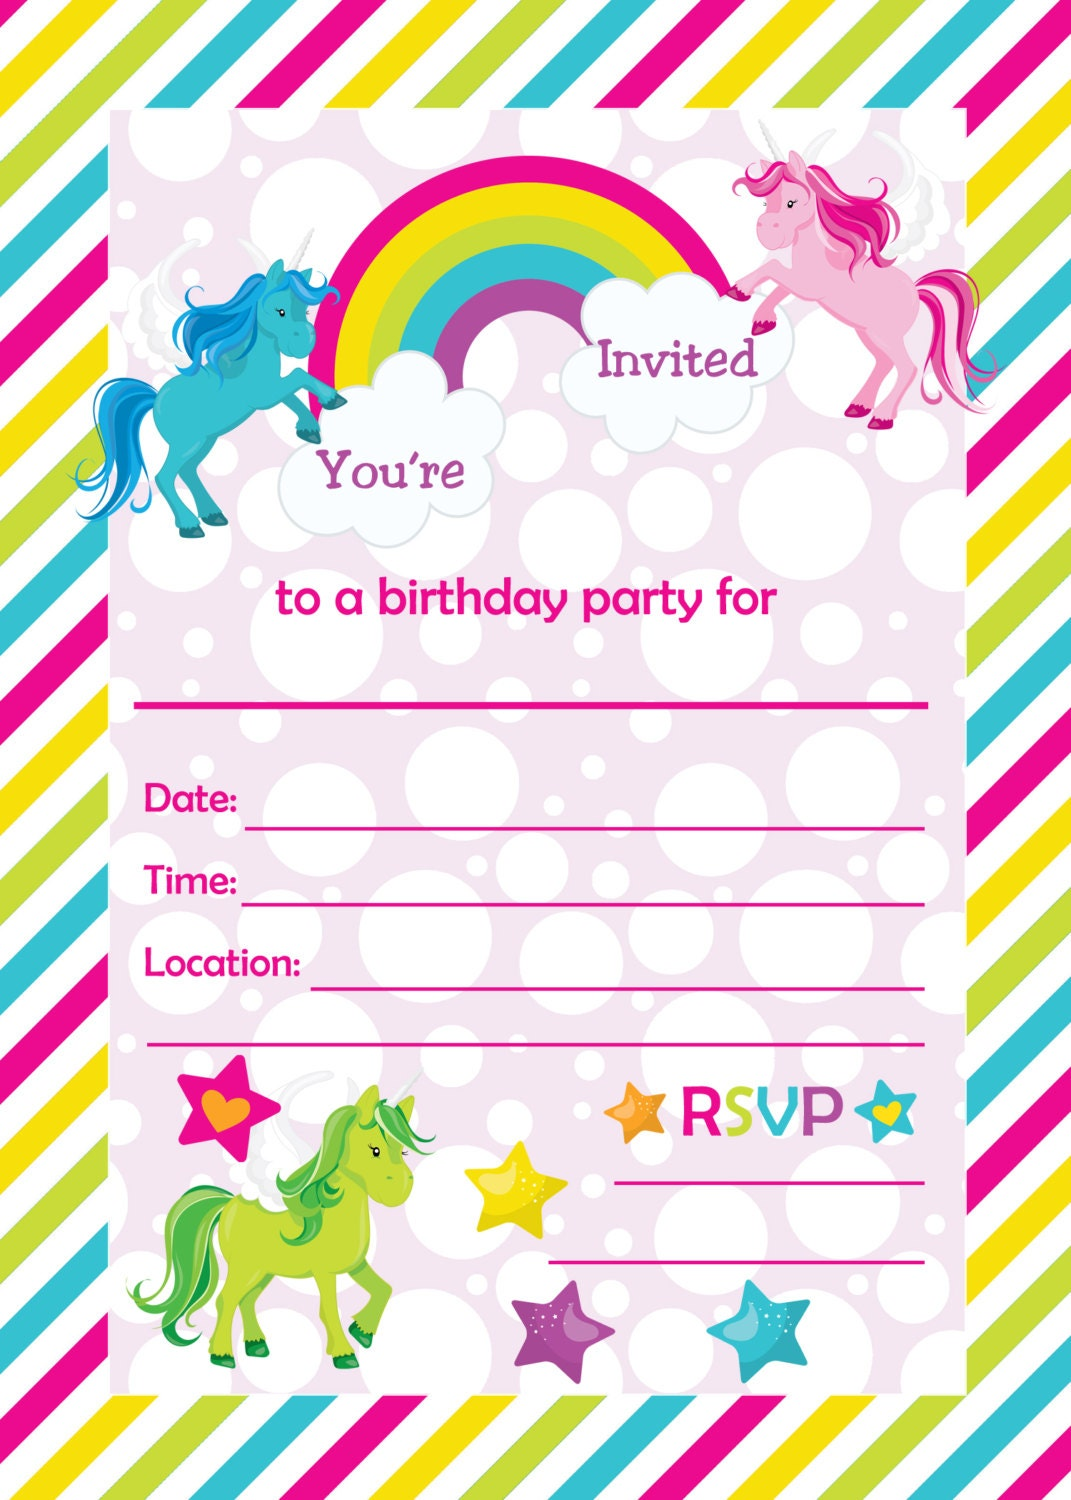 Birthday party invitations printable selol ink birthday party invitations printable stopboris Image collections